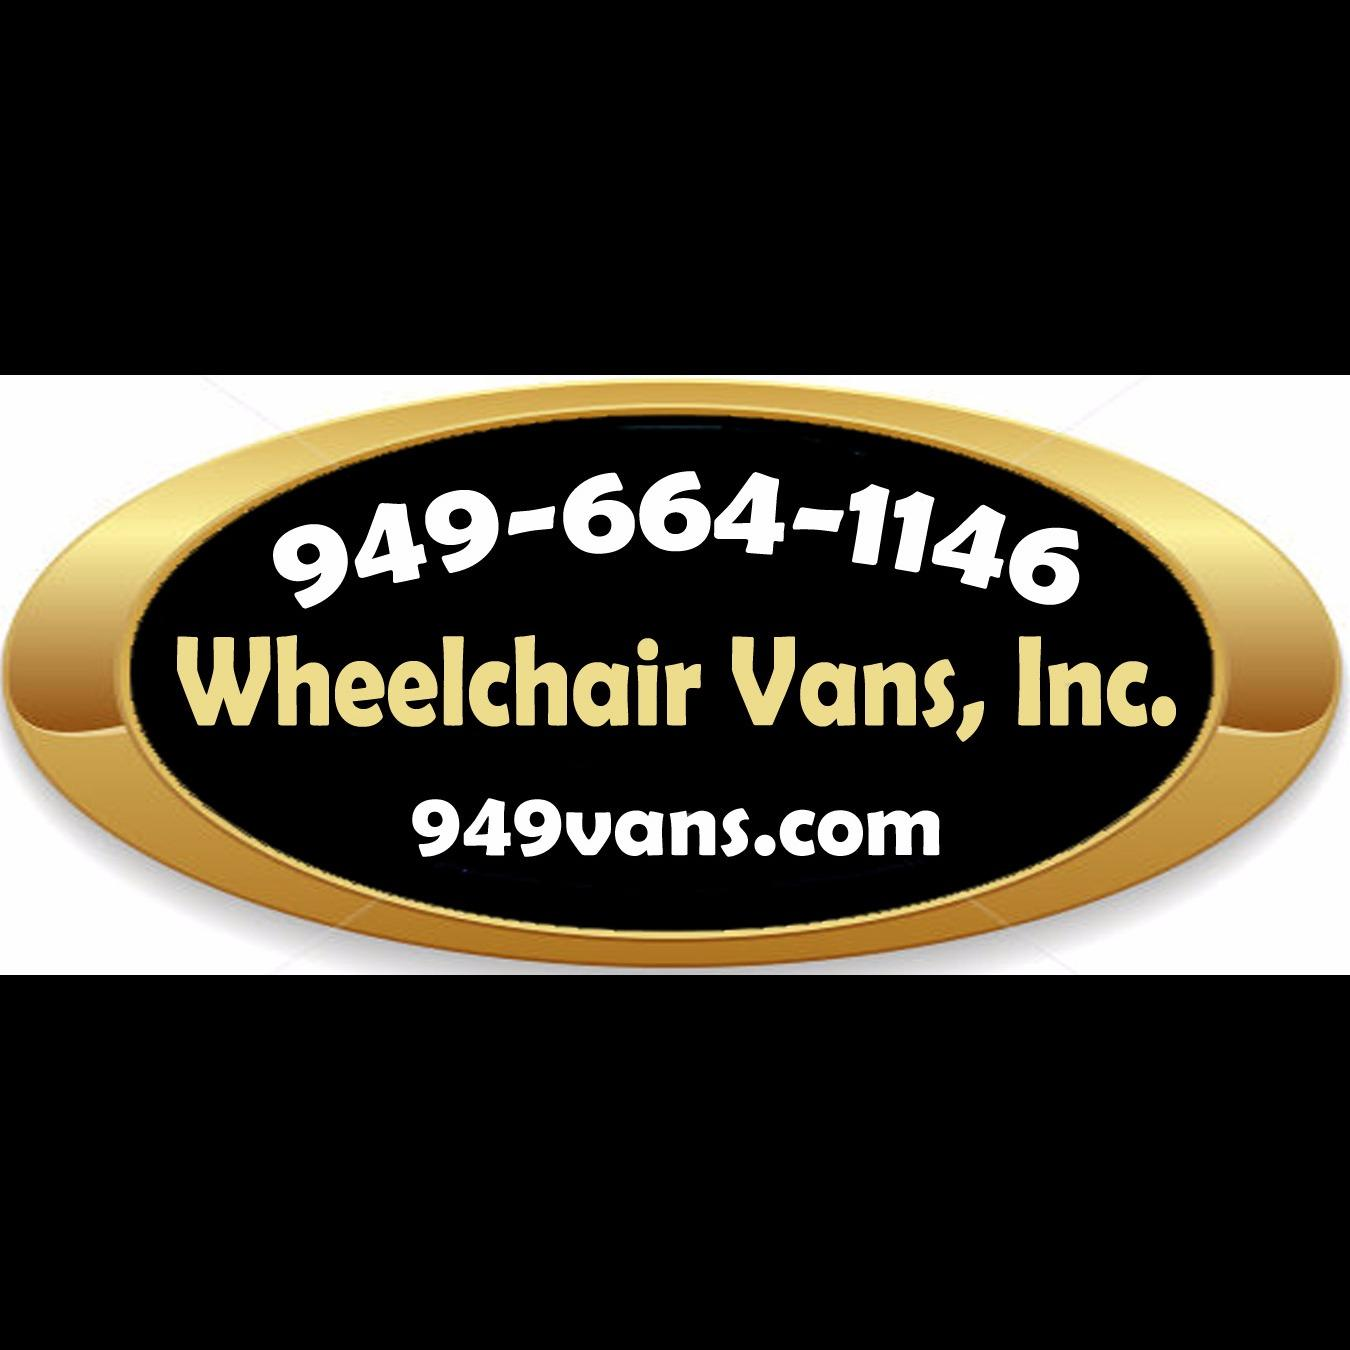 Wheelchair Vans Inc